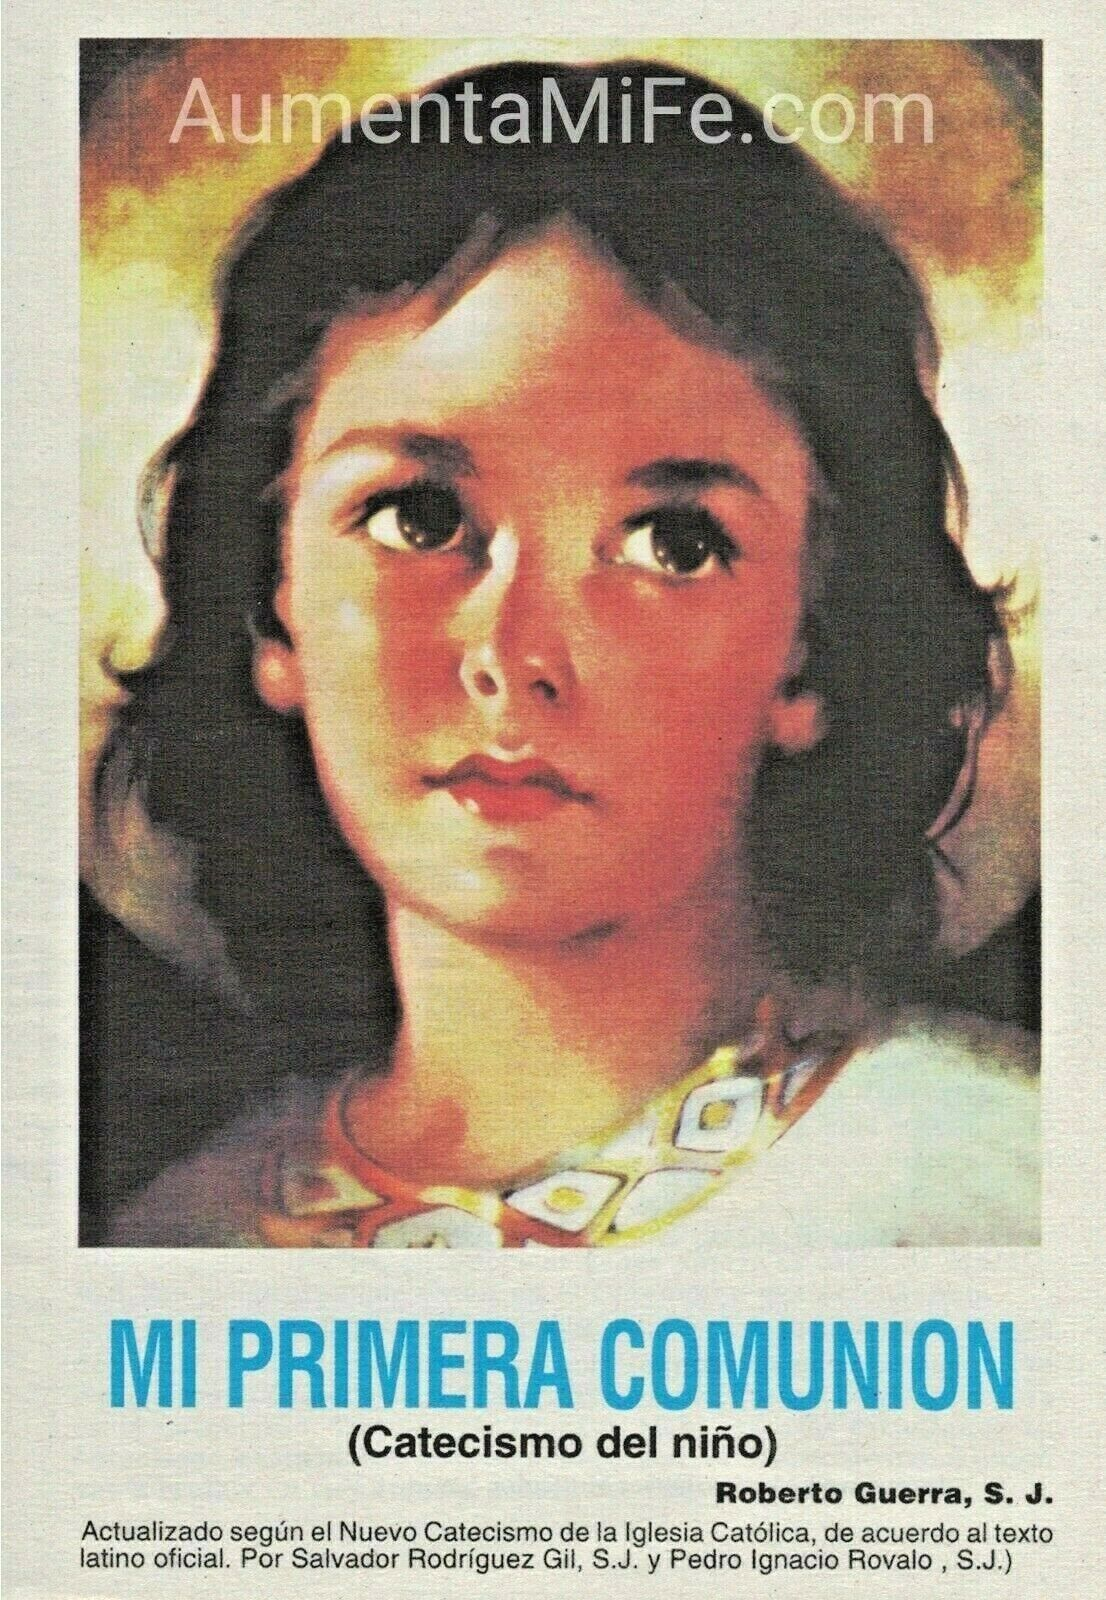 Mi Primera Comunion Catecismo Del Nino By Roberto Guerra 2003 Trade Paperback For Sale Online Ebay